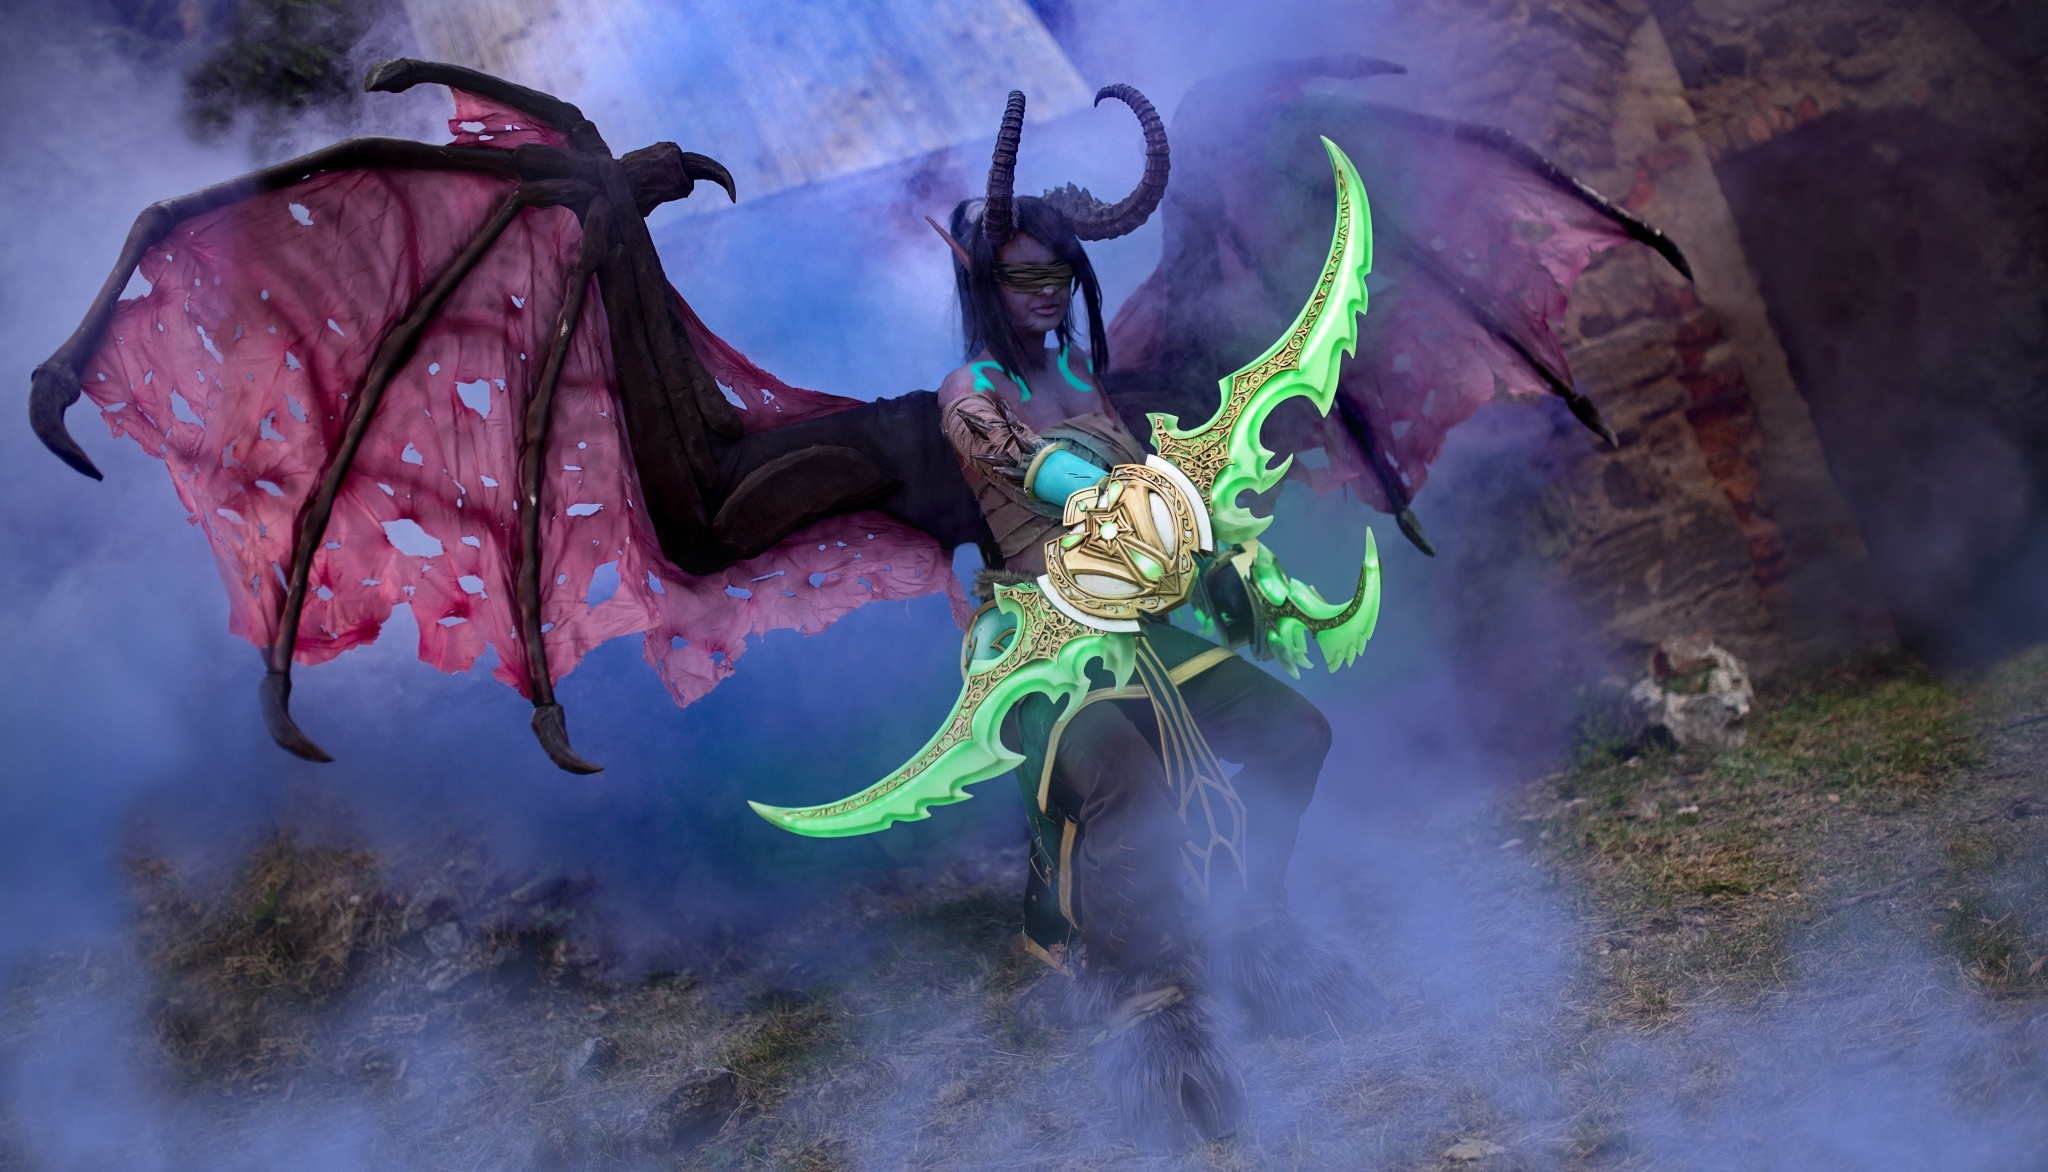 How to Photograph a Cosplay - Illidan cosplay